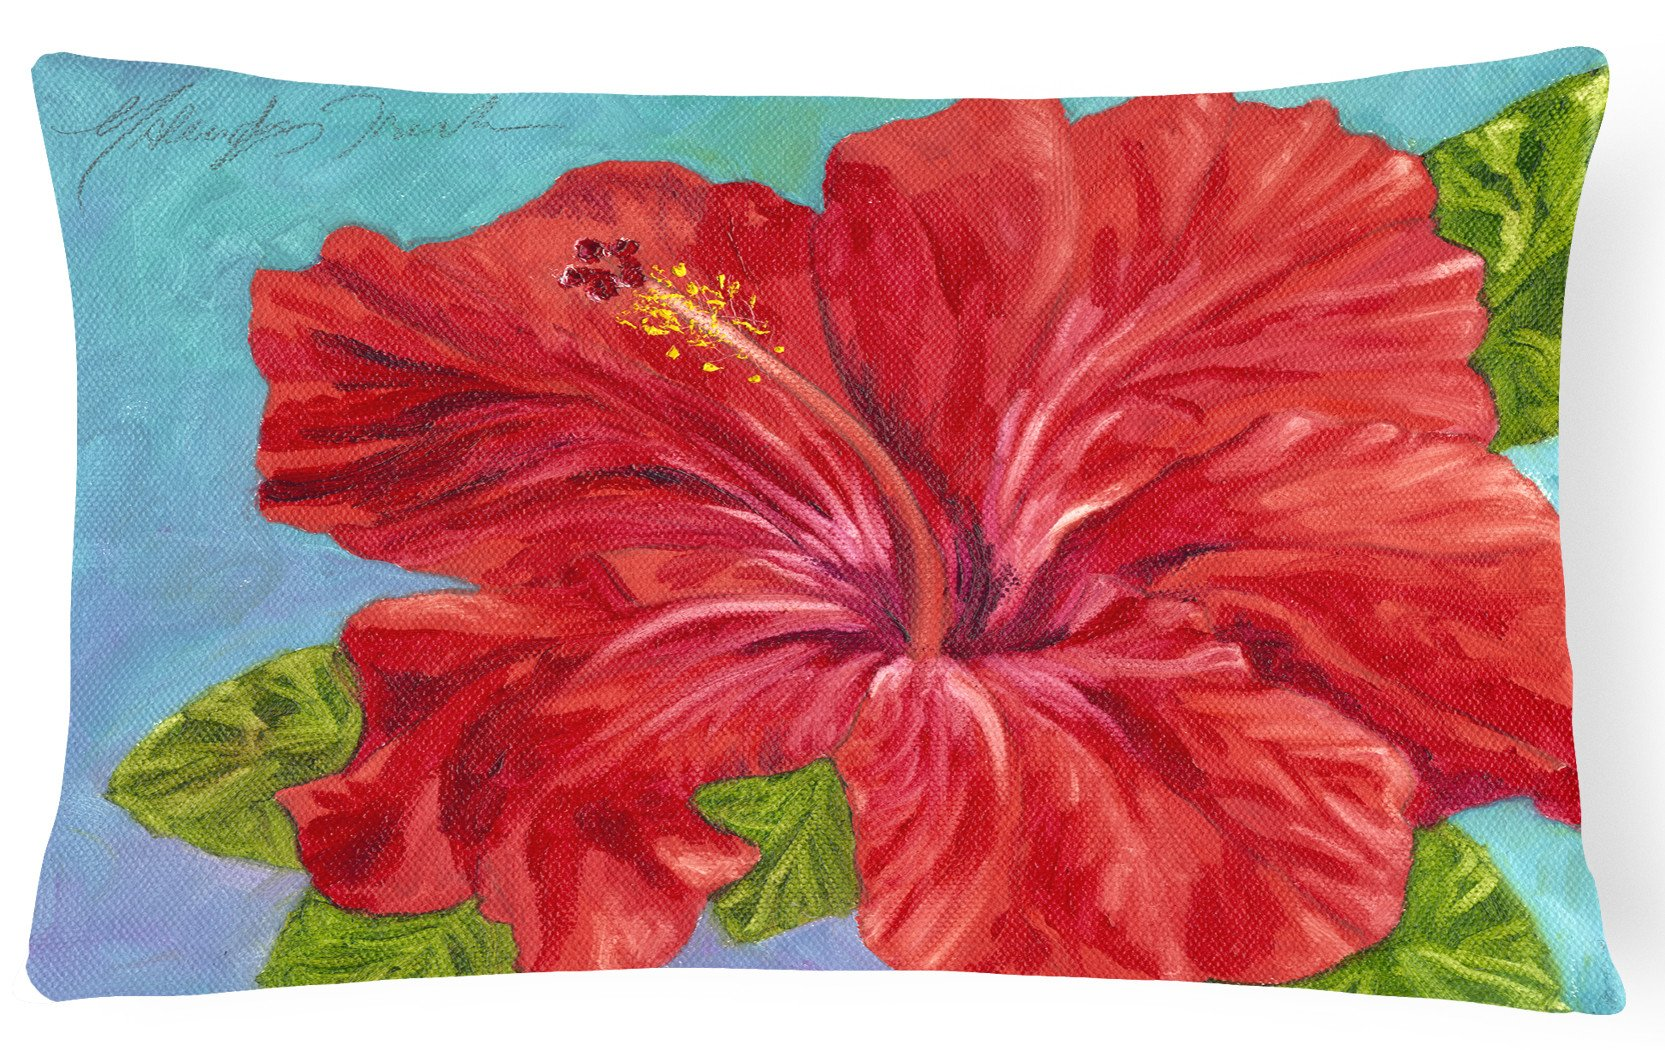 Buy this Red Hibiscus by Malenda Trick Fabric Decorative Pillow TMTR0319PW1216